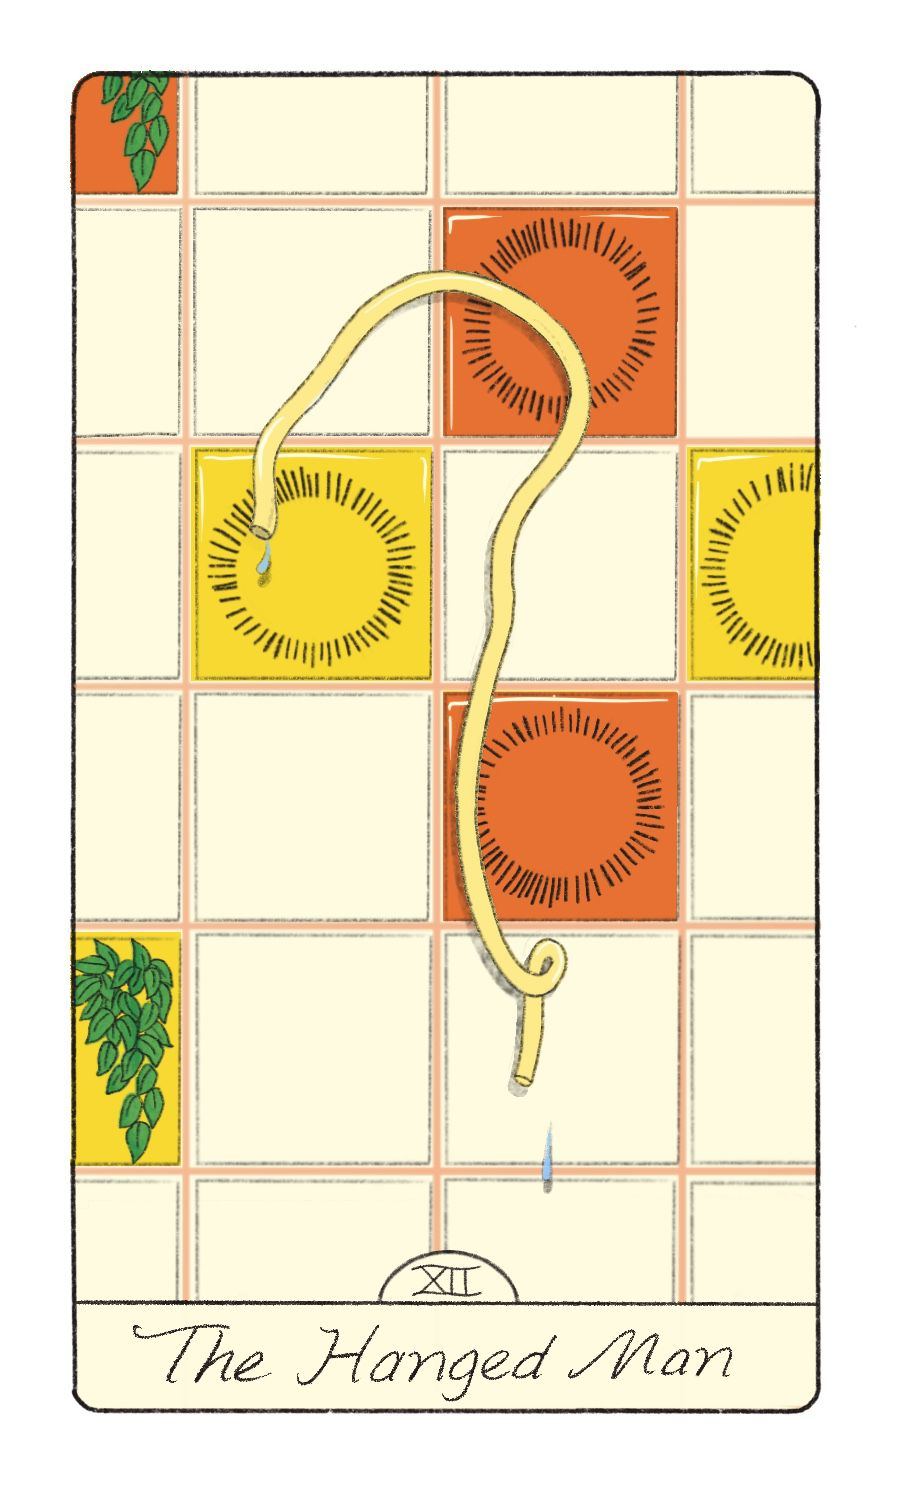 Tarot card of the Hanged Man, featuring a piece of spaghetti stuck to a tile wall